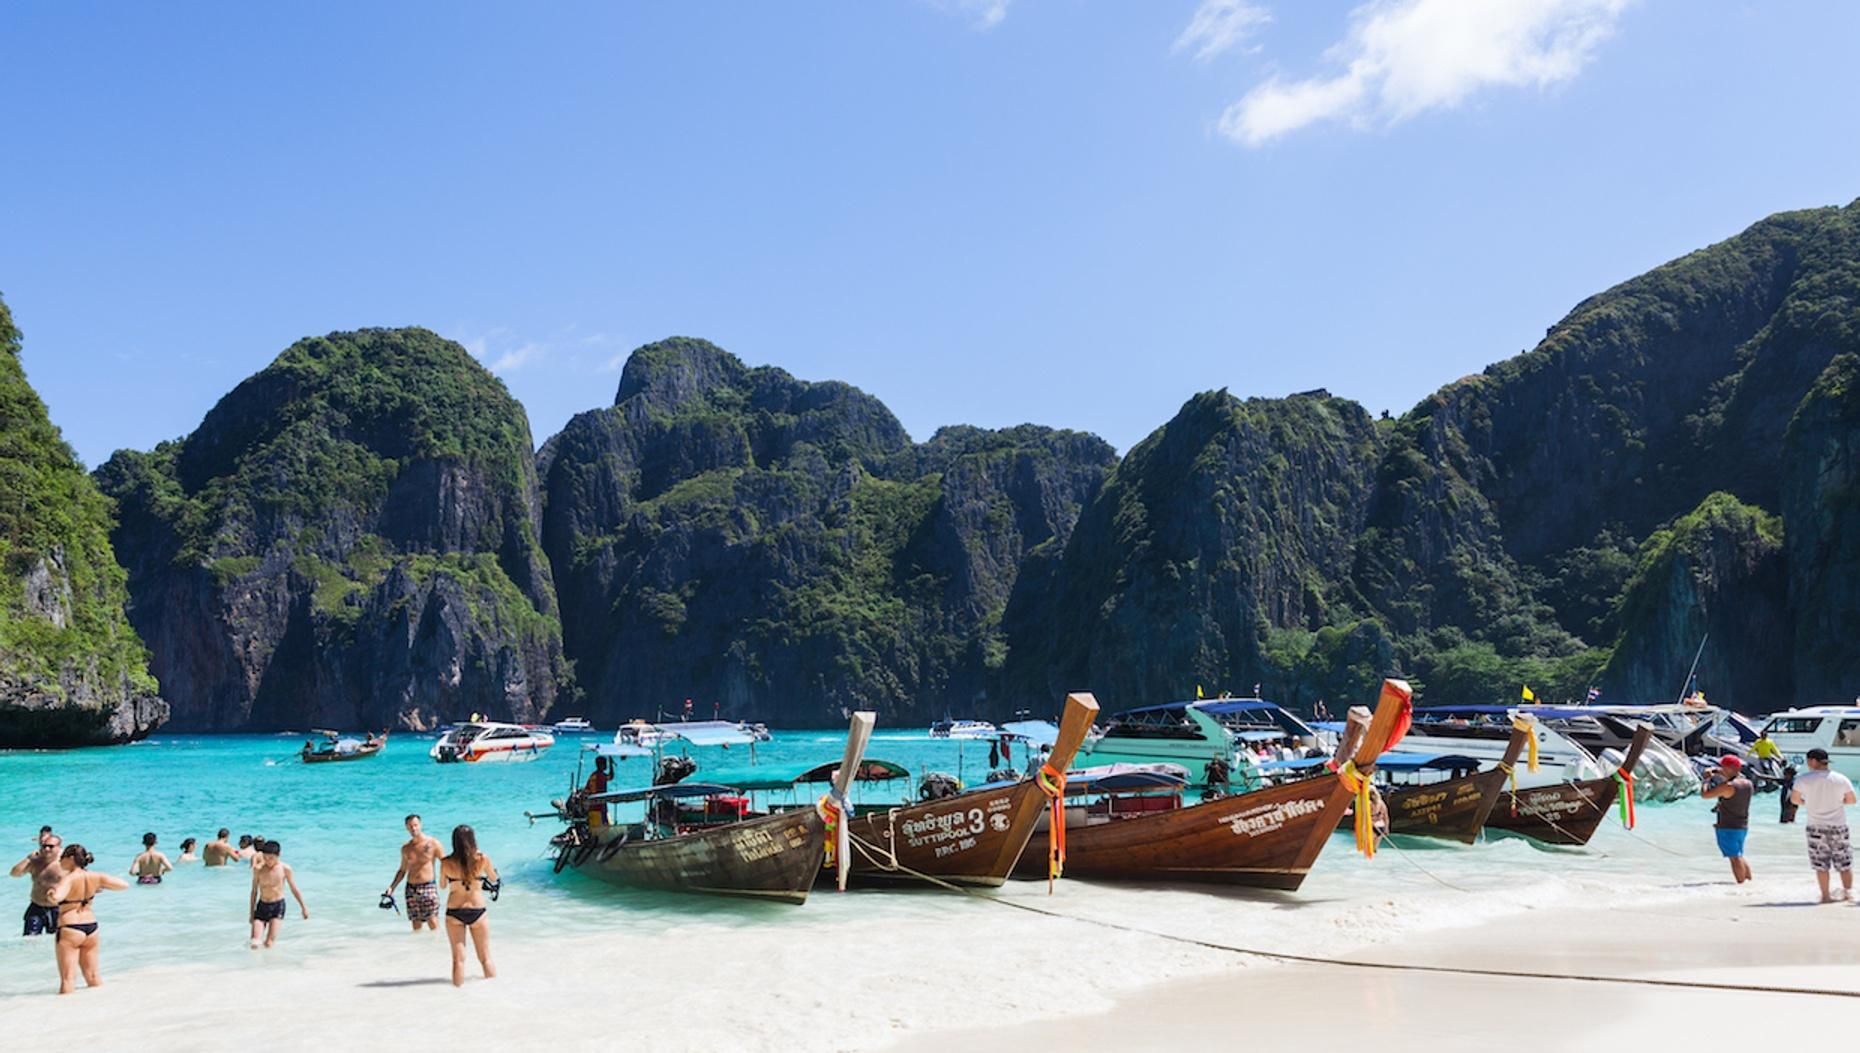 Day-Long Tour of the Phi Phi Islands